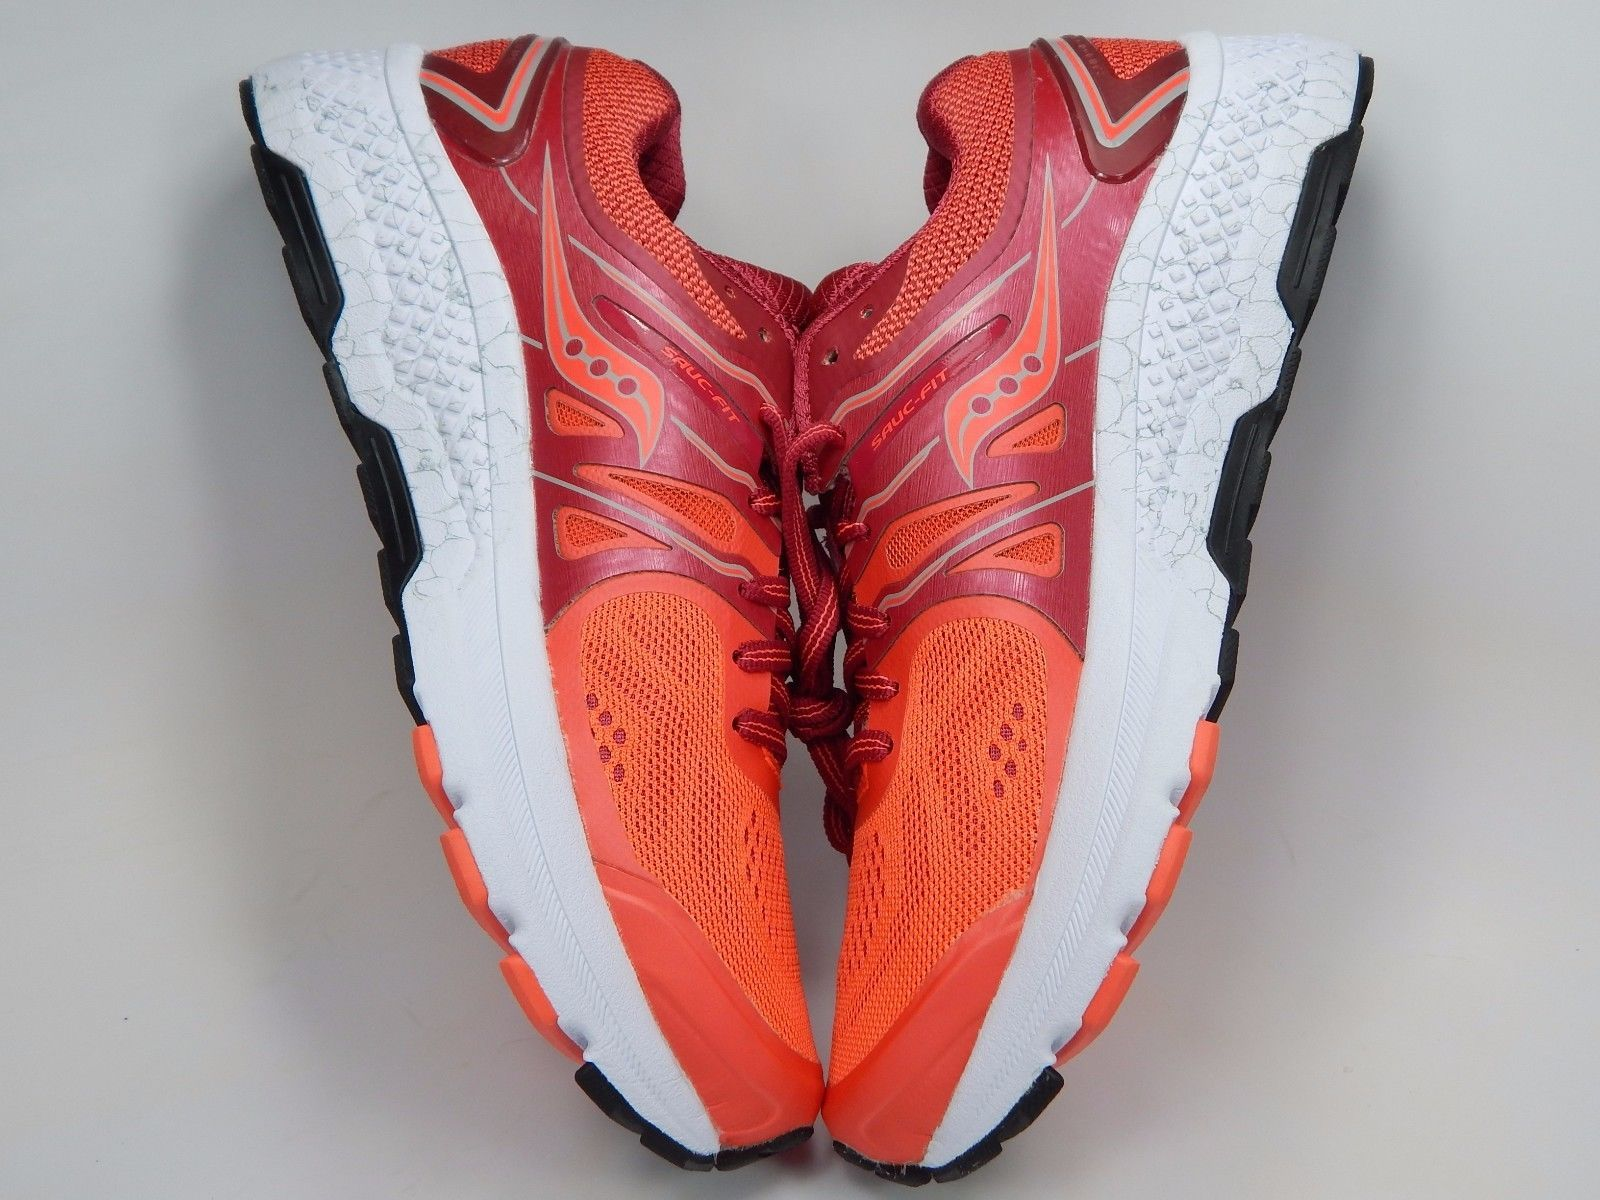 Saucony Omni 16 Women's Running Shoes Size US 8 M (B) EU 39 Berry Coral S10370-2